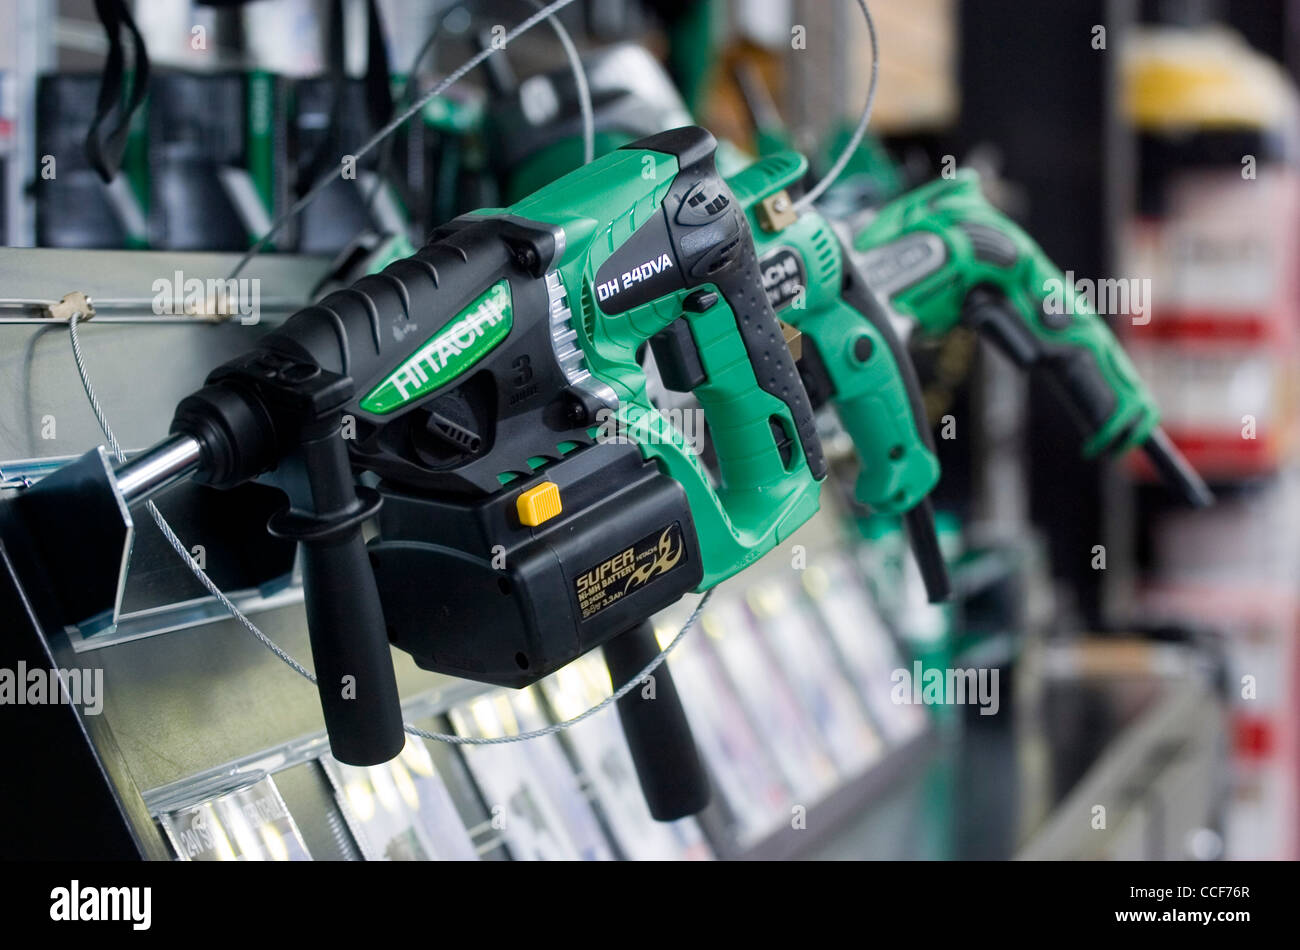 Wickes Shop Stock Photos & Wickes Shop Stock Images - Alamy